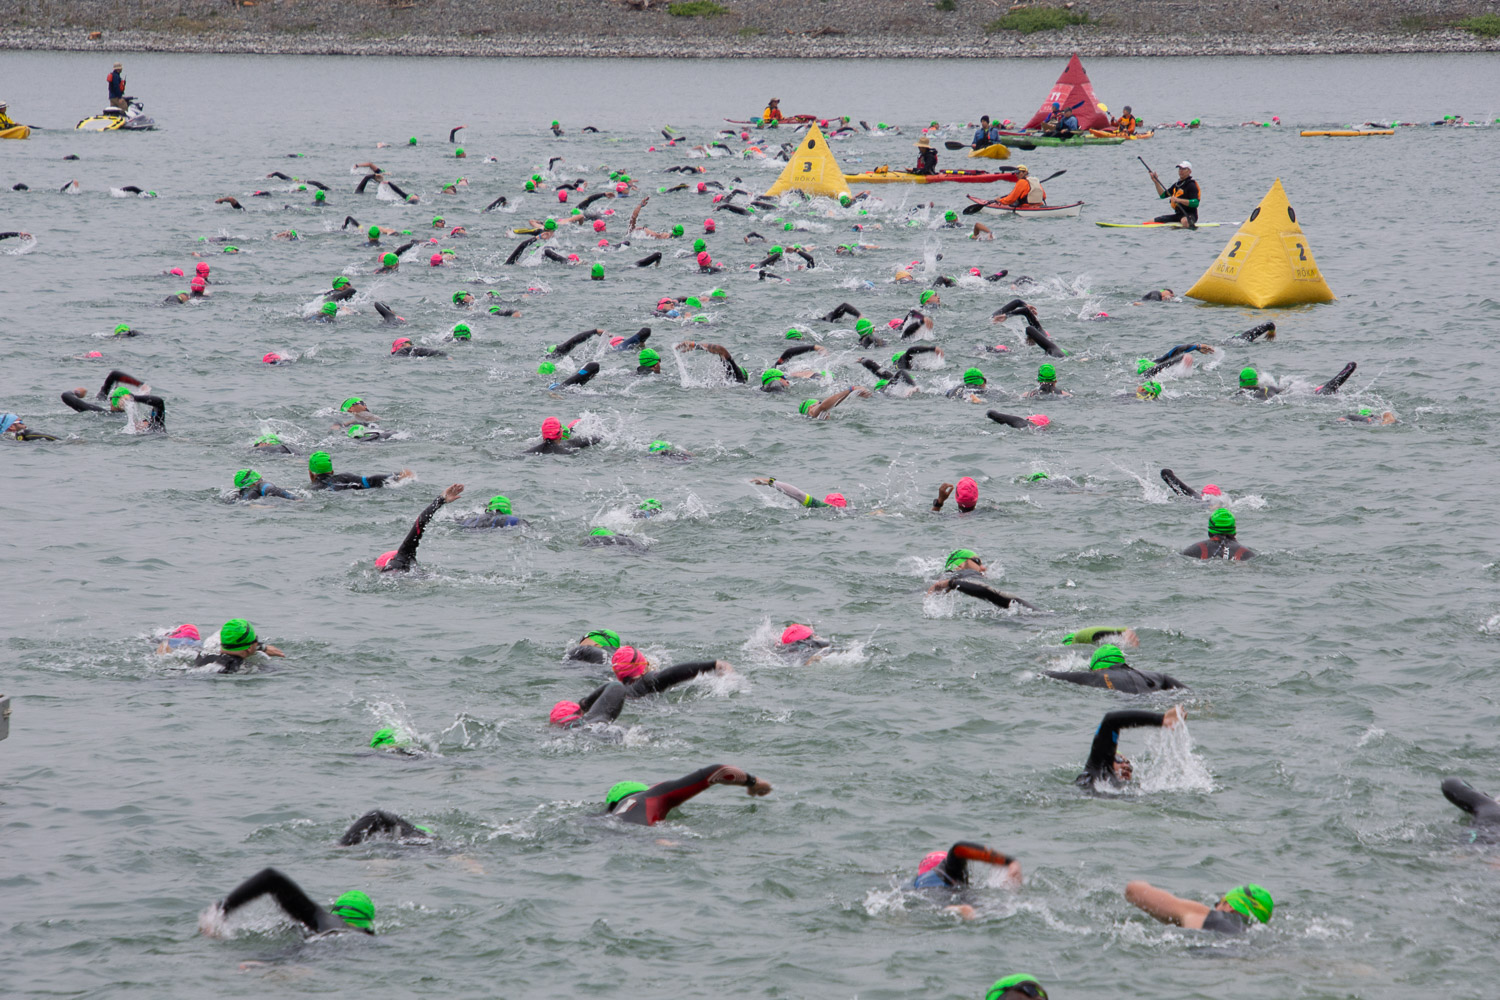 Swimmers in the water at the Santa Rosa Ironman 2019